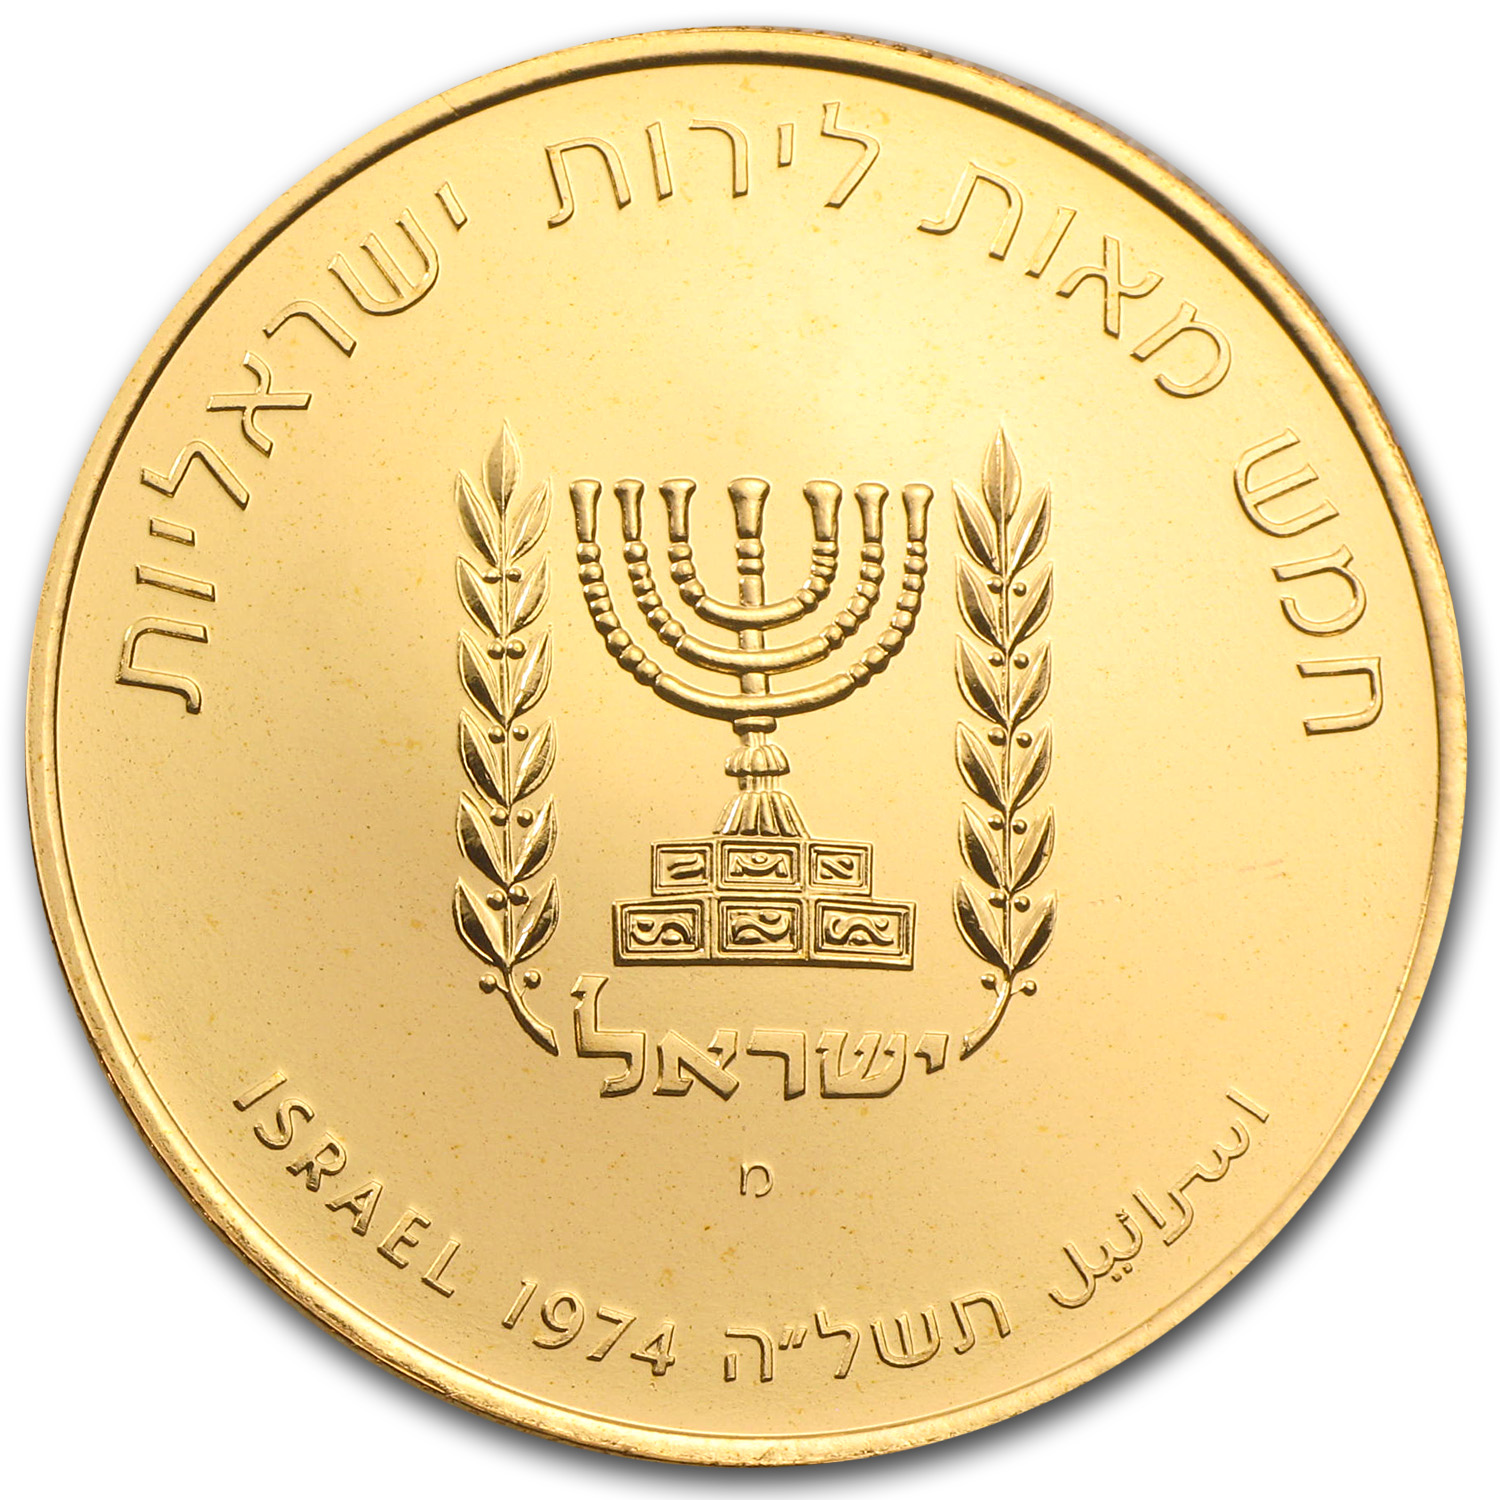 1974 Israel Gold David Ben-Gurion 500 Lirot Proof